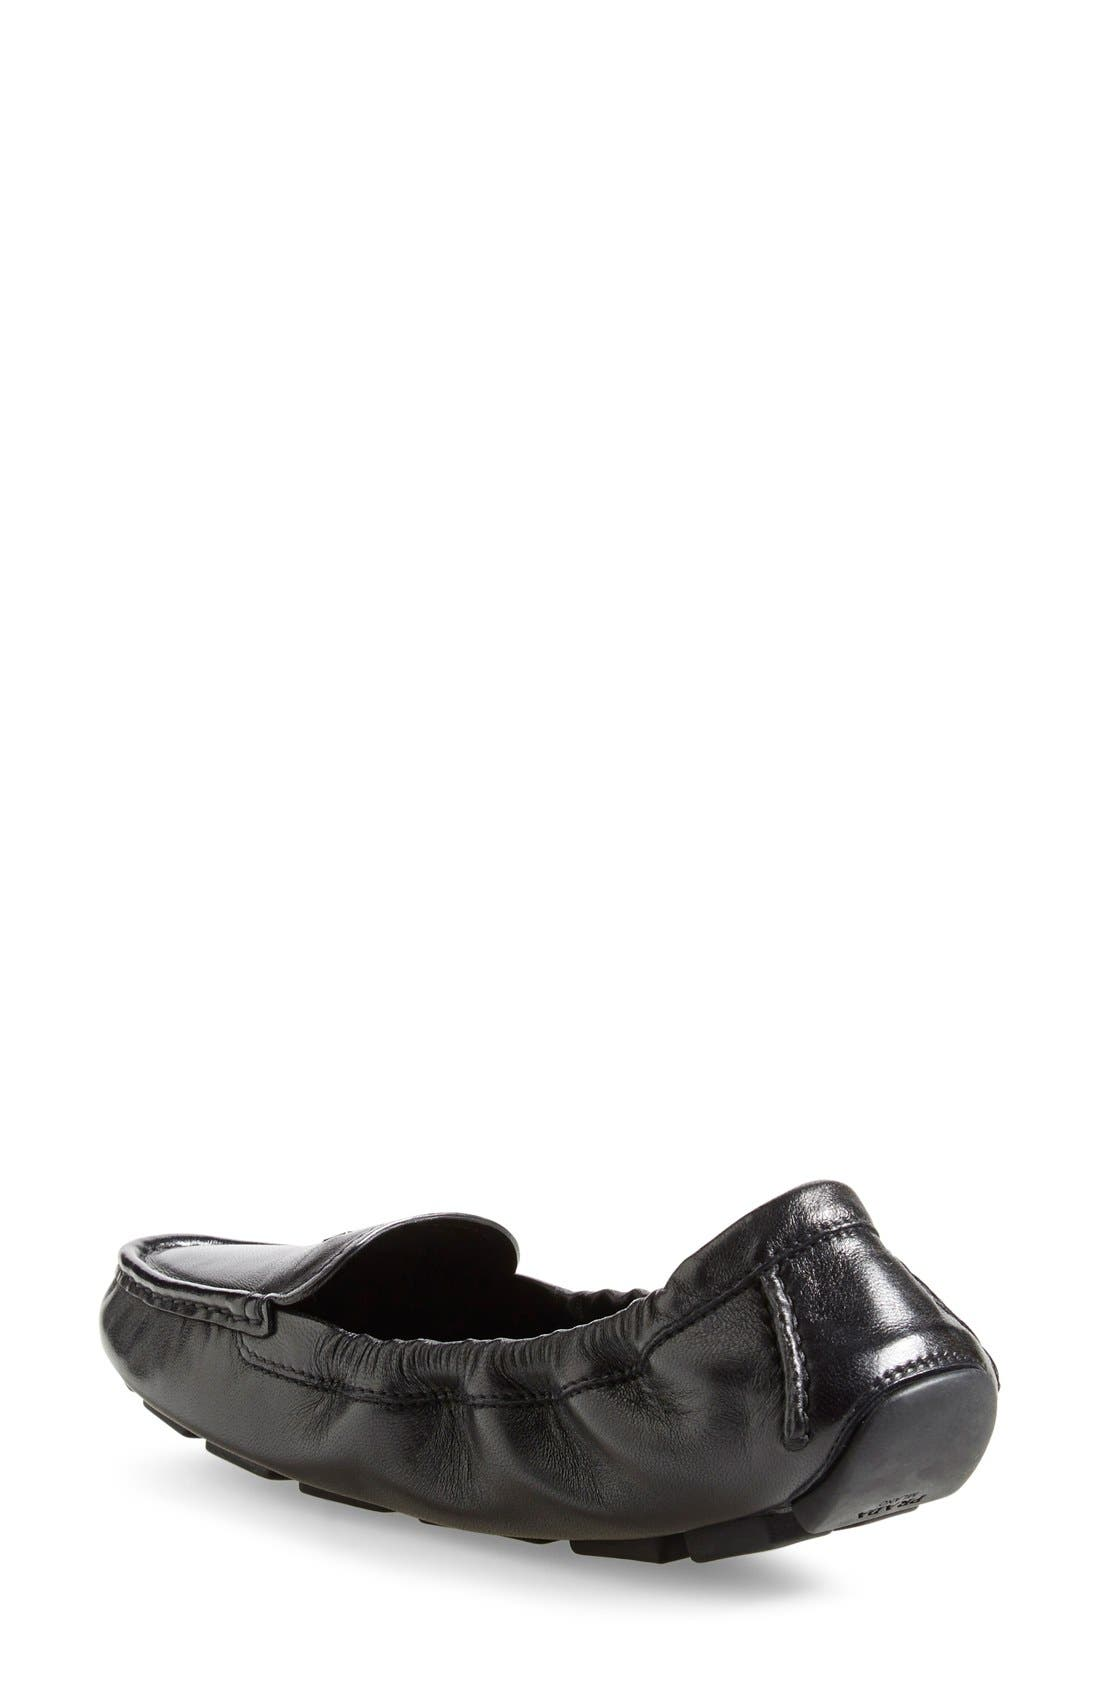 'Scrunch' Driving Loafer,                             Alternate thumbnail 2, color,                             Black Leather